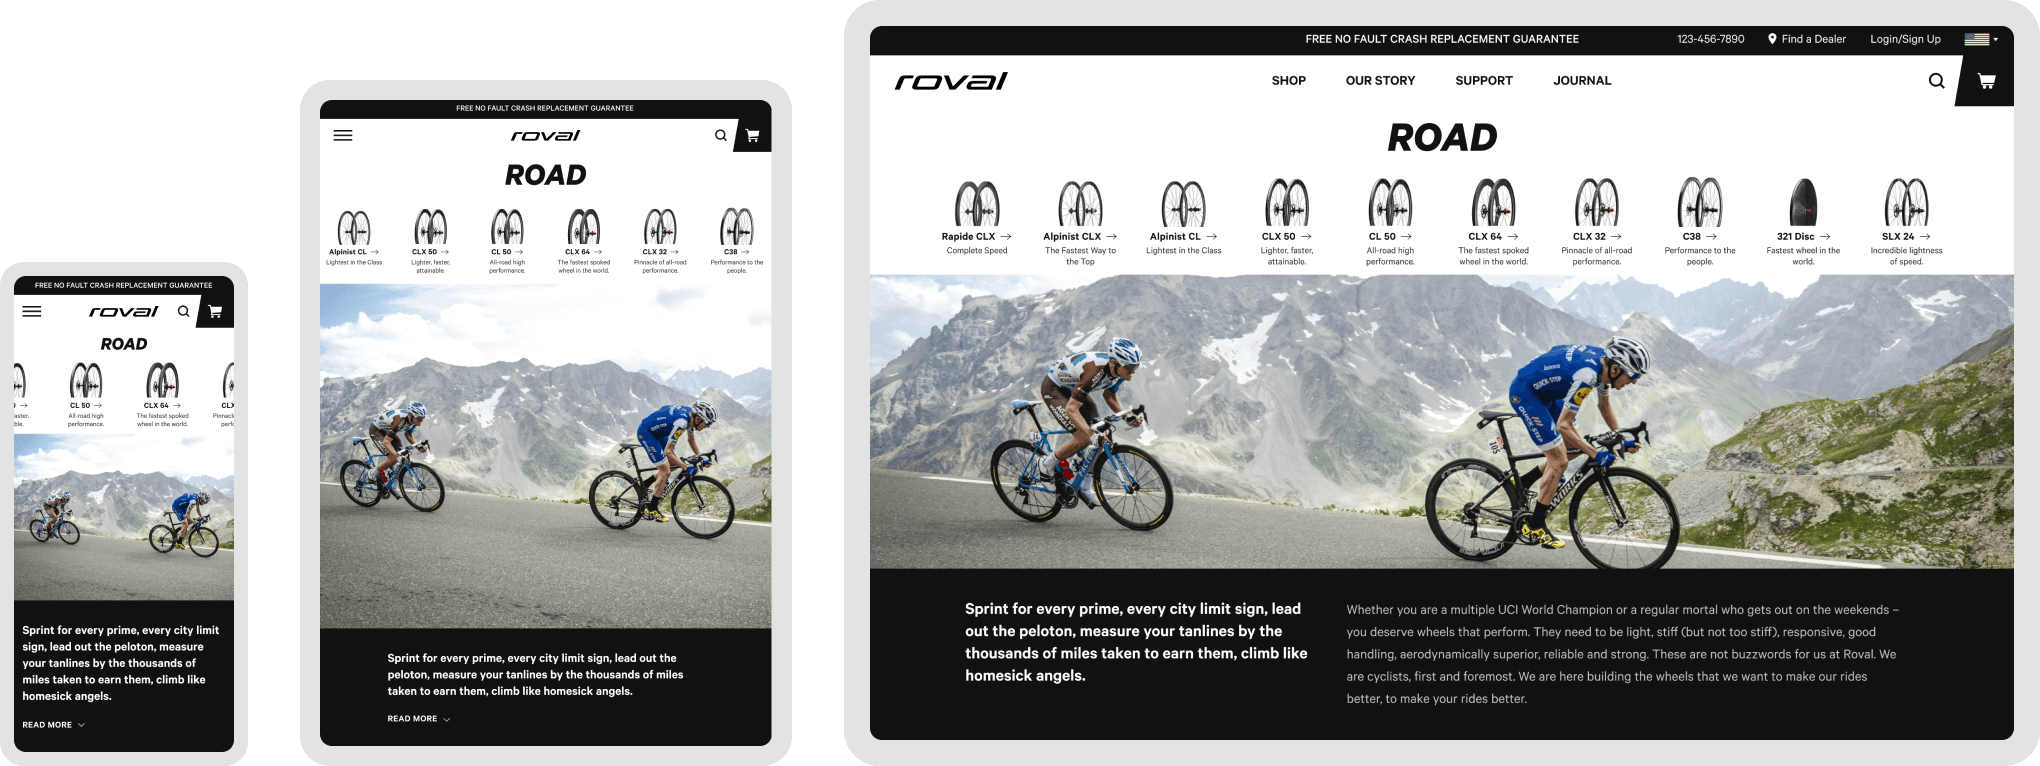 The Road biking page for Roval's site has a responsive design to adapt to mobile, tablet, and desktop devices.